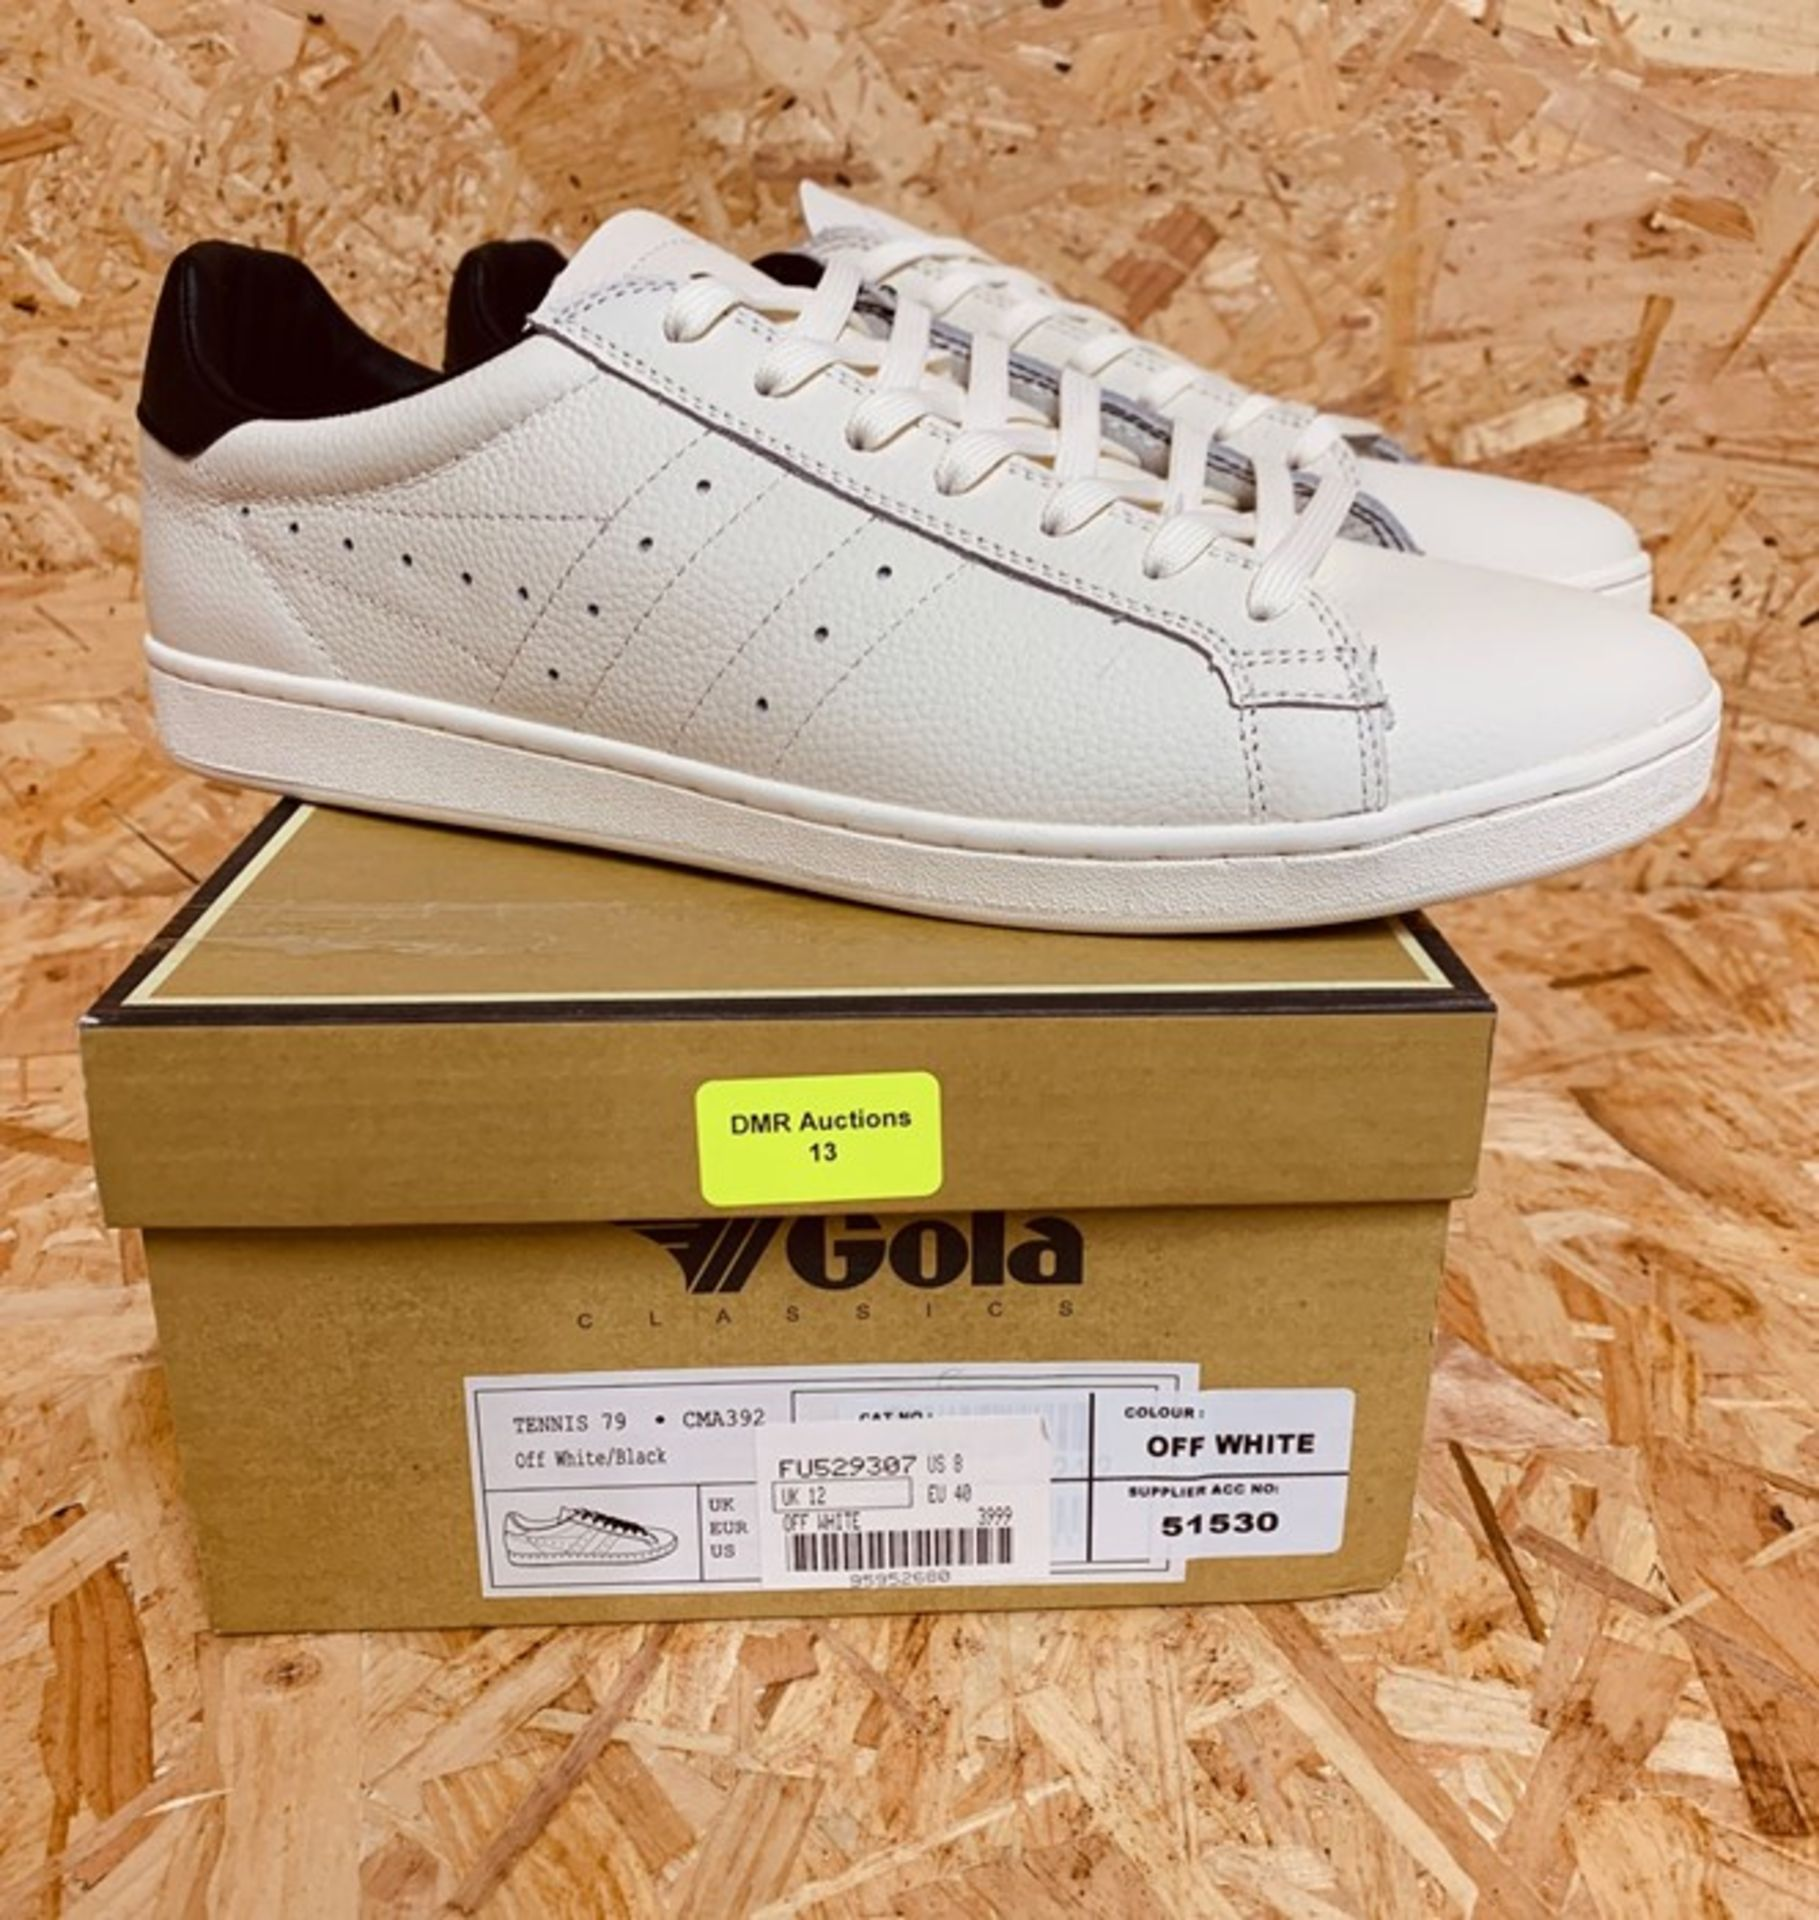 GOLA MENS TENNIS 79 TRAINERS - UK SIZE 12/OFF WHITE